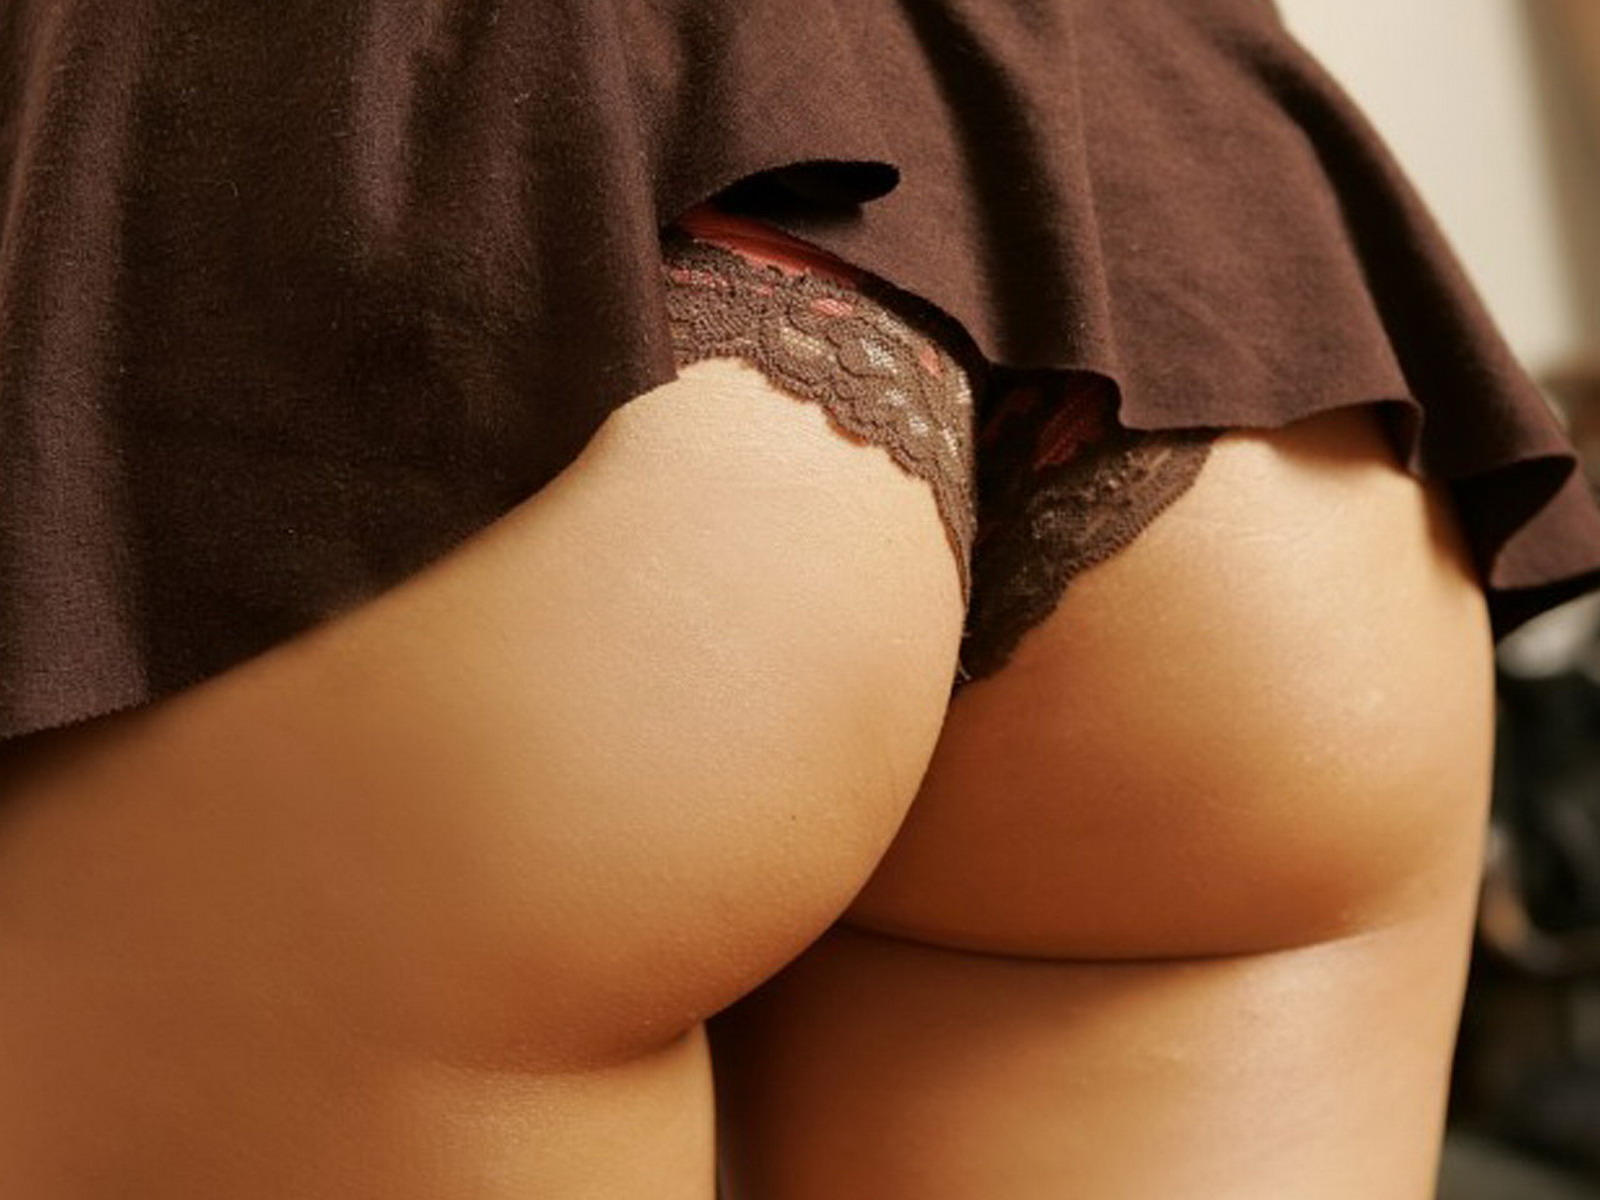 magnificent buttocks